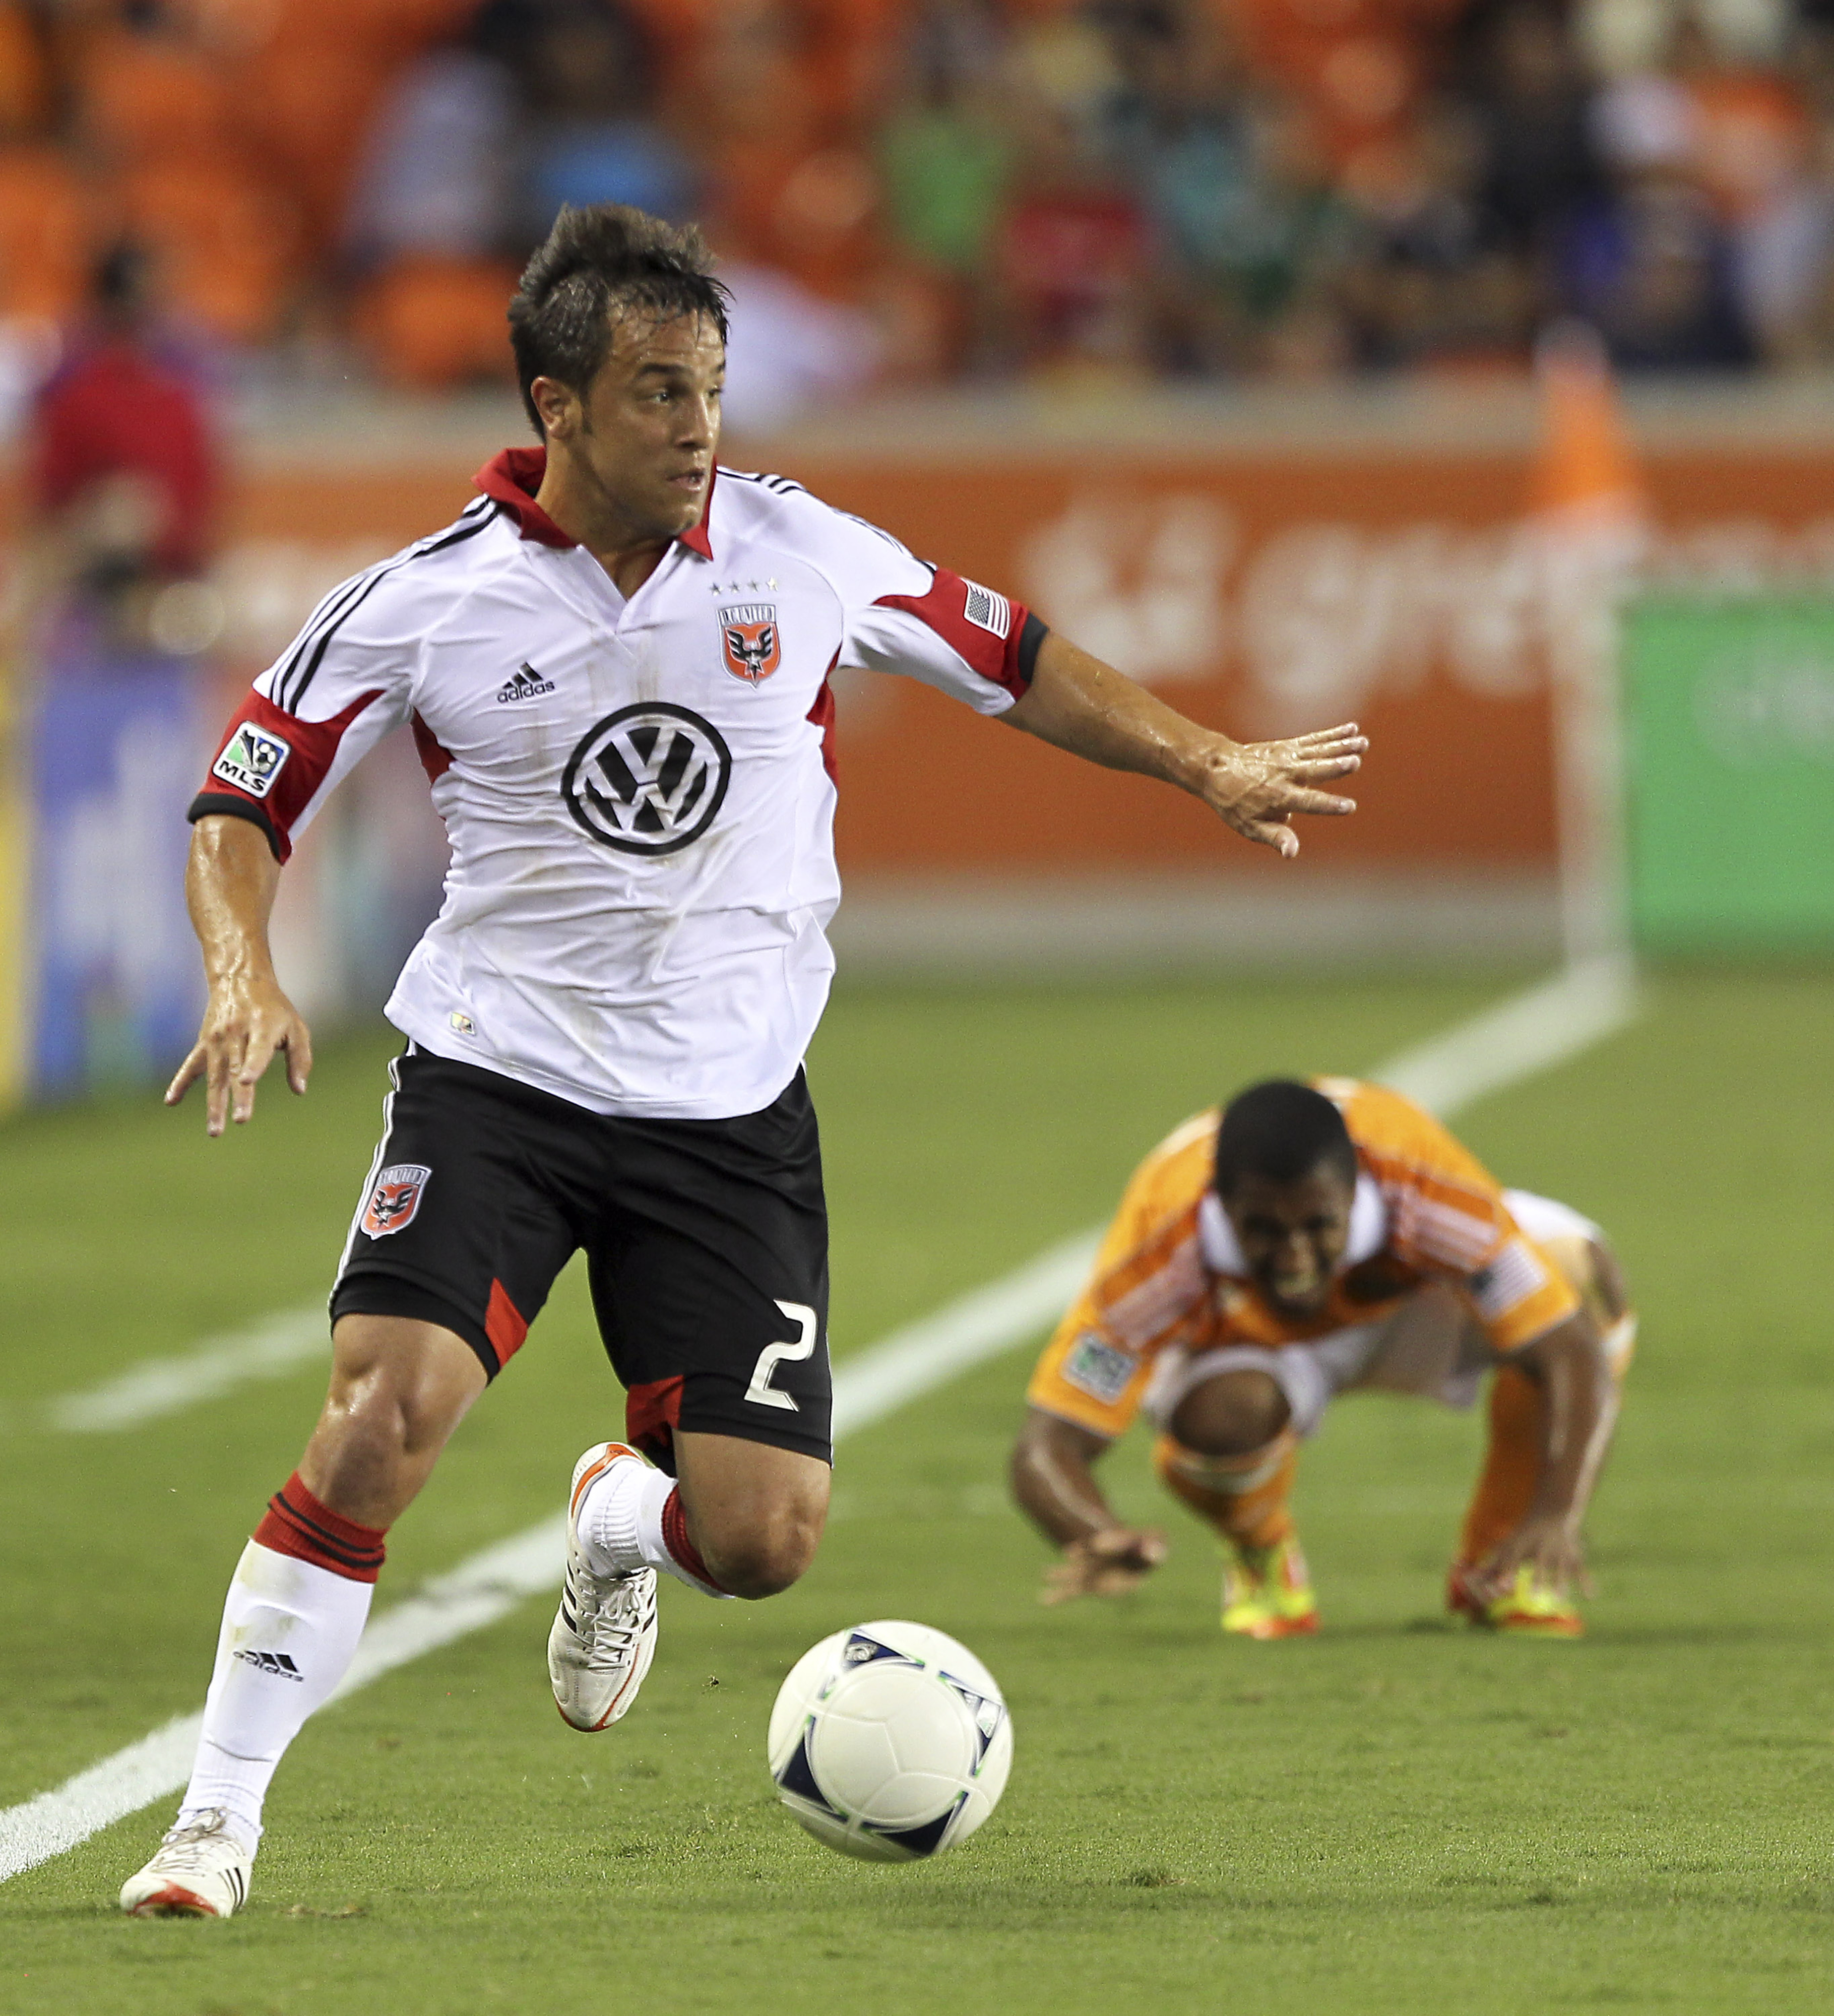 HOUSTON, TX - JULY 15:   Danny Cruz #2 of the D.C. United looks for a teammate to pass to against the Houston Dynamo at BBVA Compass Stadium on July 15, 2012 in Houston, Texas. (Photo by Bob Levey/Getty Images)